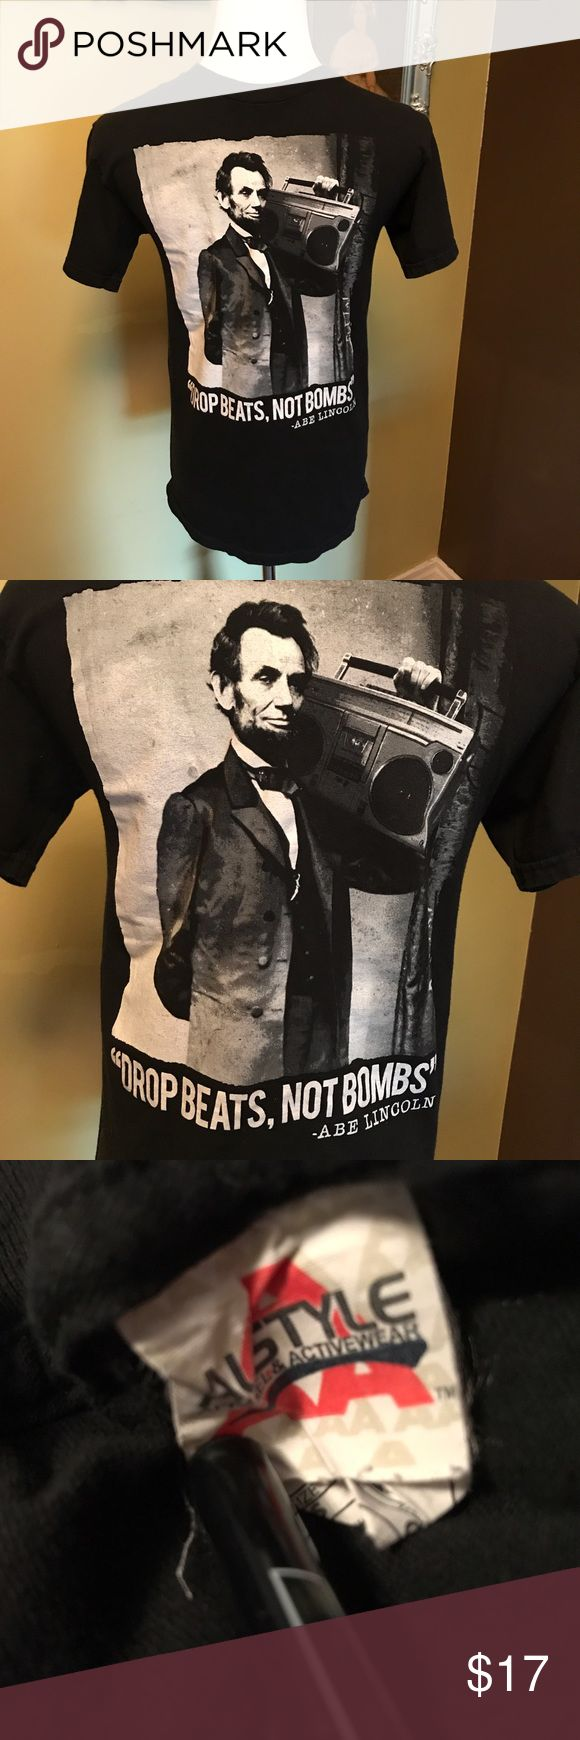 "100% Cotton Abraham Lincoln T-Shirt In Black Black t-shirt in 100% cotton with Abraham Lincoln on front holding a boom box and Abe's most famous quote, ""Drop beats, not bombs."" It's true. Google it. Armpit-to-armpit 17"", sleeve 7"" and length 24"". Please let me know if you need more pix or have any questions. All of my items come from a smoke/pet free home. I'm ready to get rid of everything so please make me an offer. Or better yet, bundle it, save more! Shirts Tees - Short Sleeve"